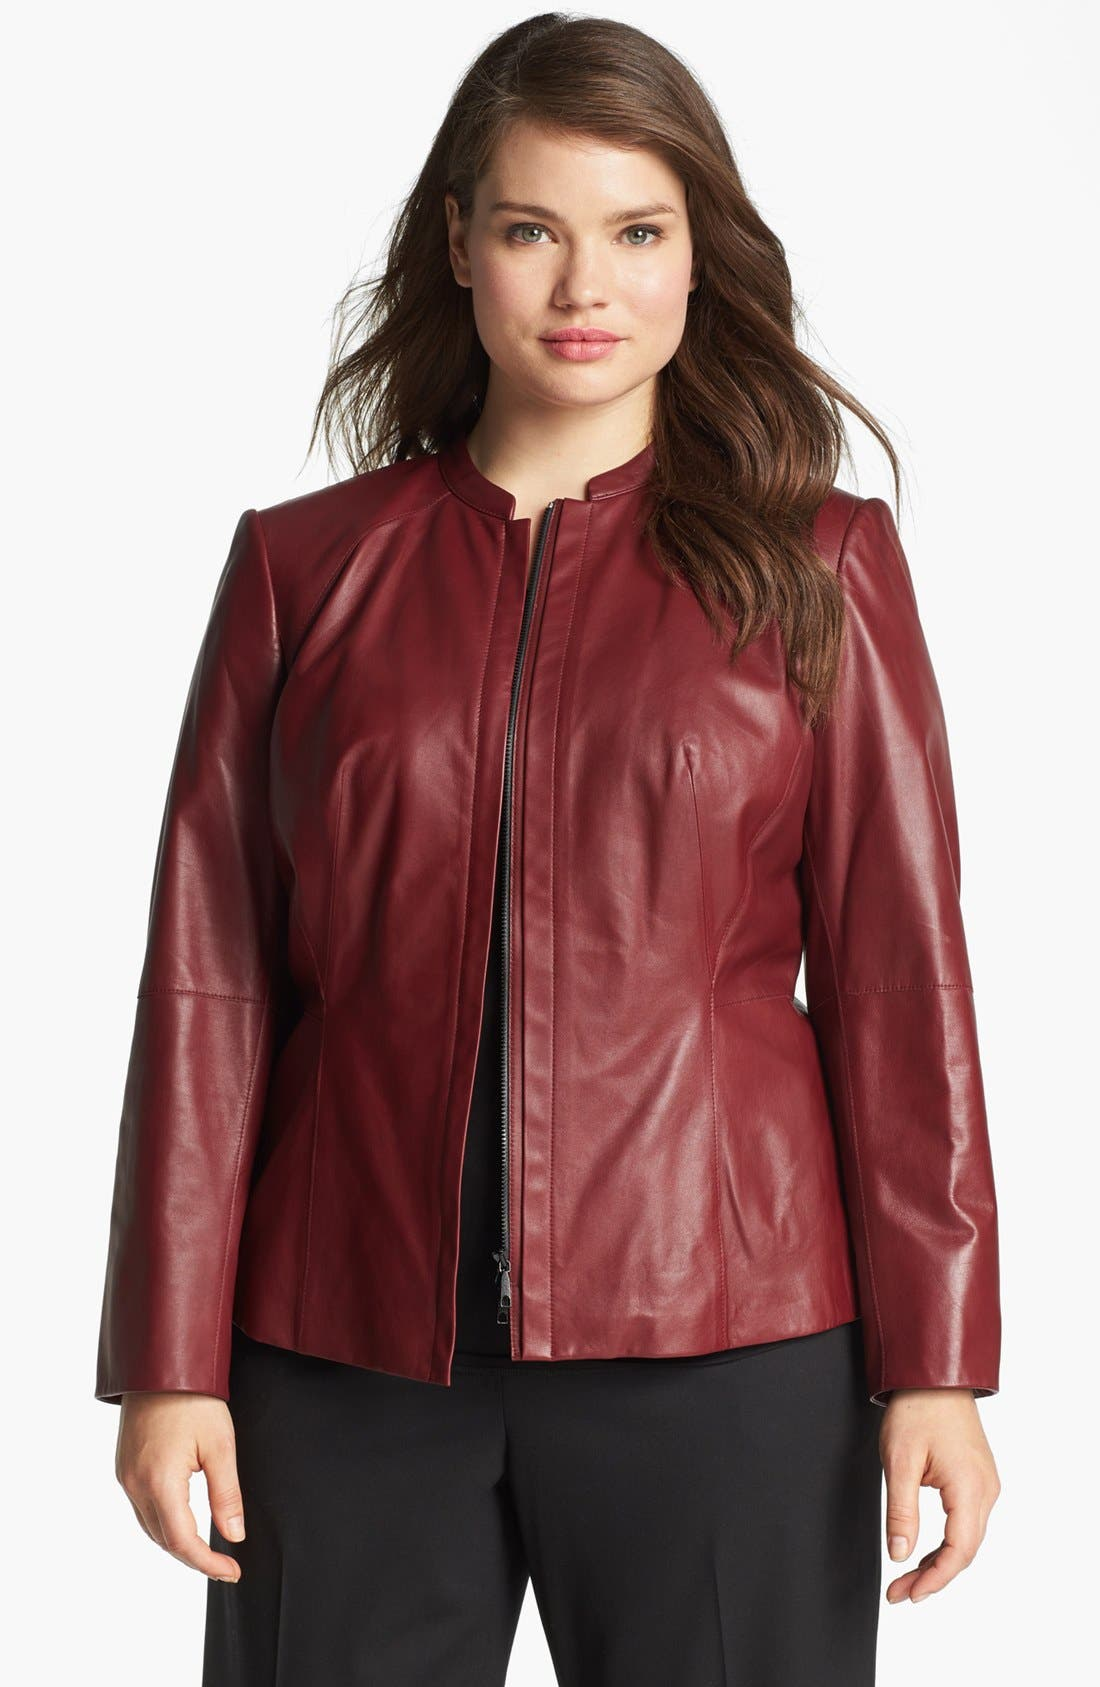 Alternate Image 1 Selected - Lafayette 148 New York Front Zip Leather Jacket (Plus Size)